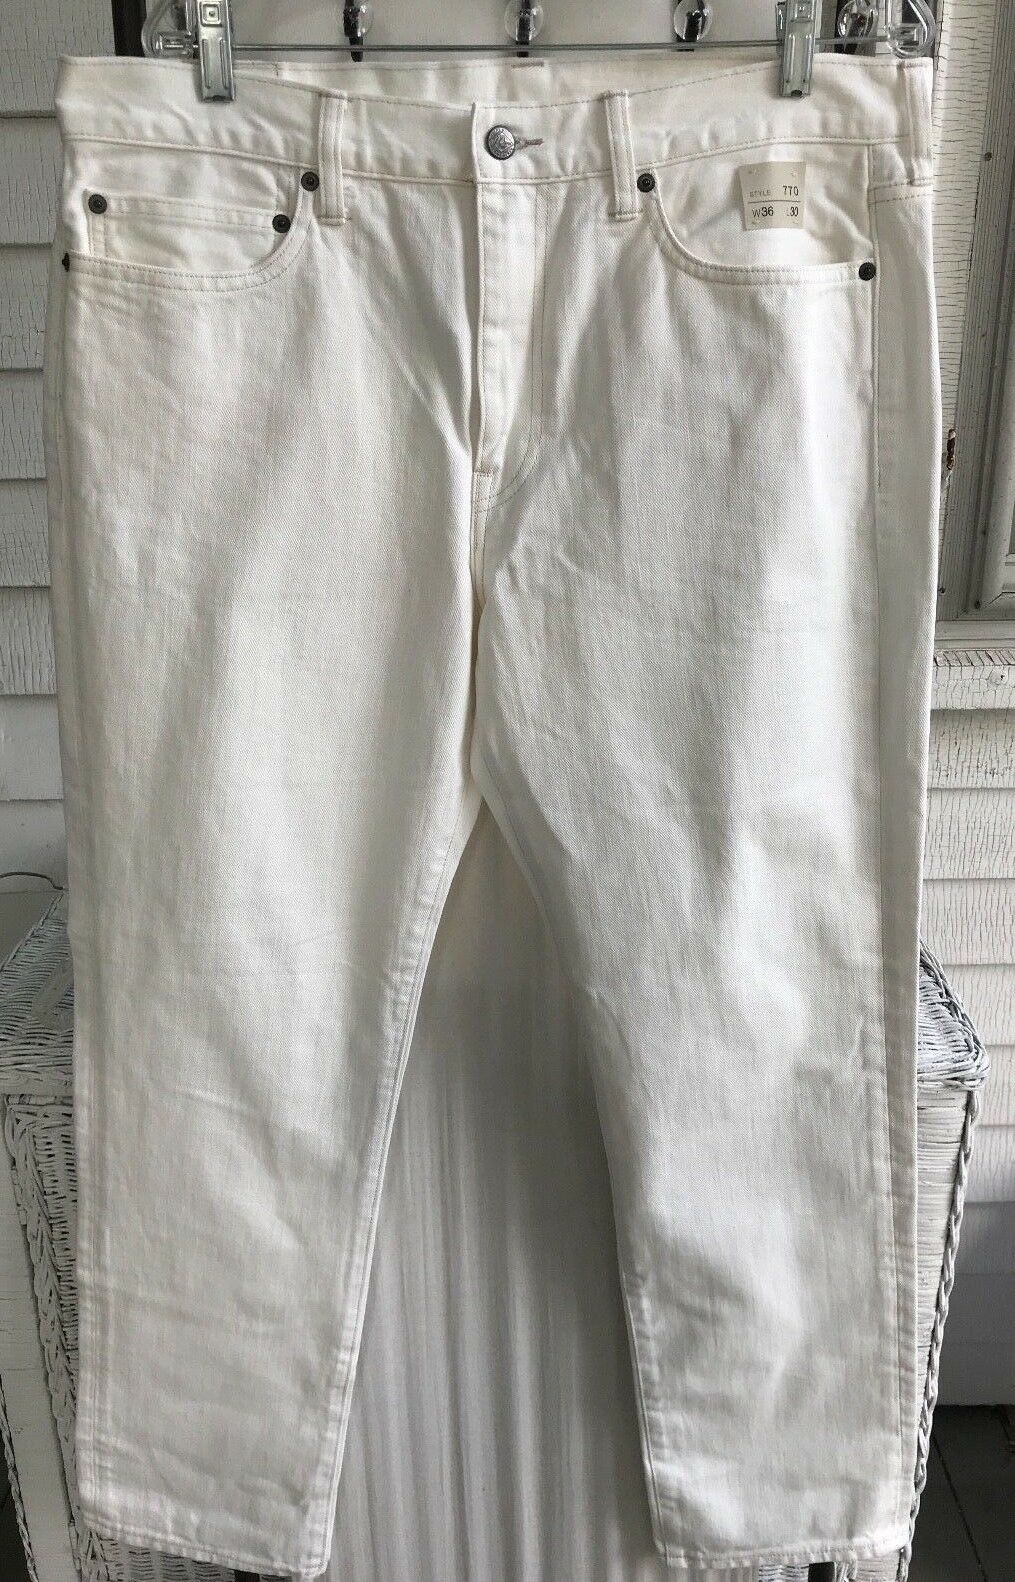 NWT J. Crew 770 STRAIGHT FIT JEANS RINSED WHITE 36 X 30 E8095